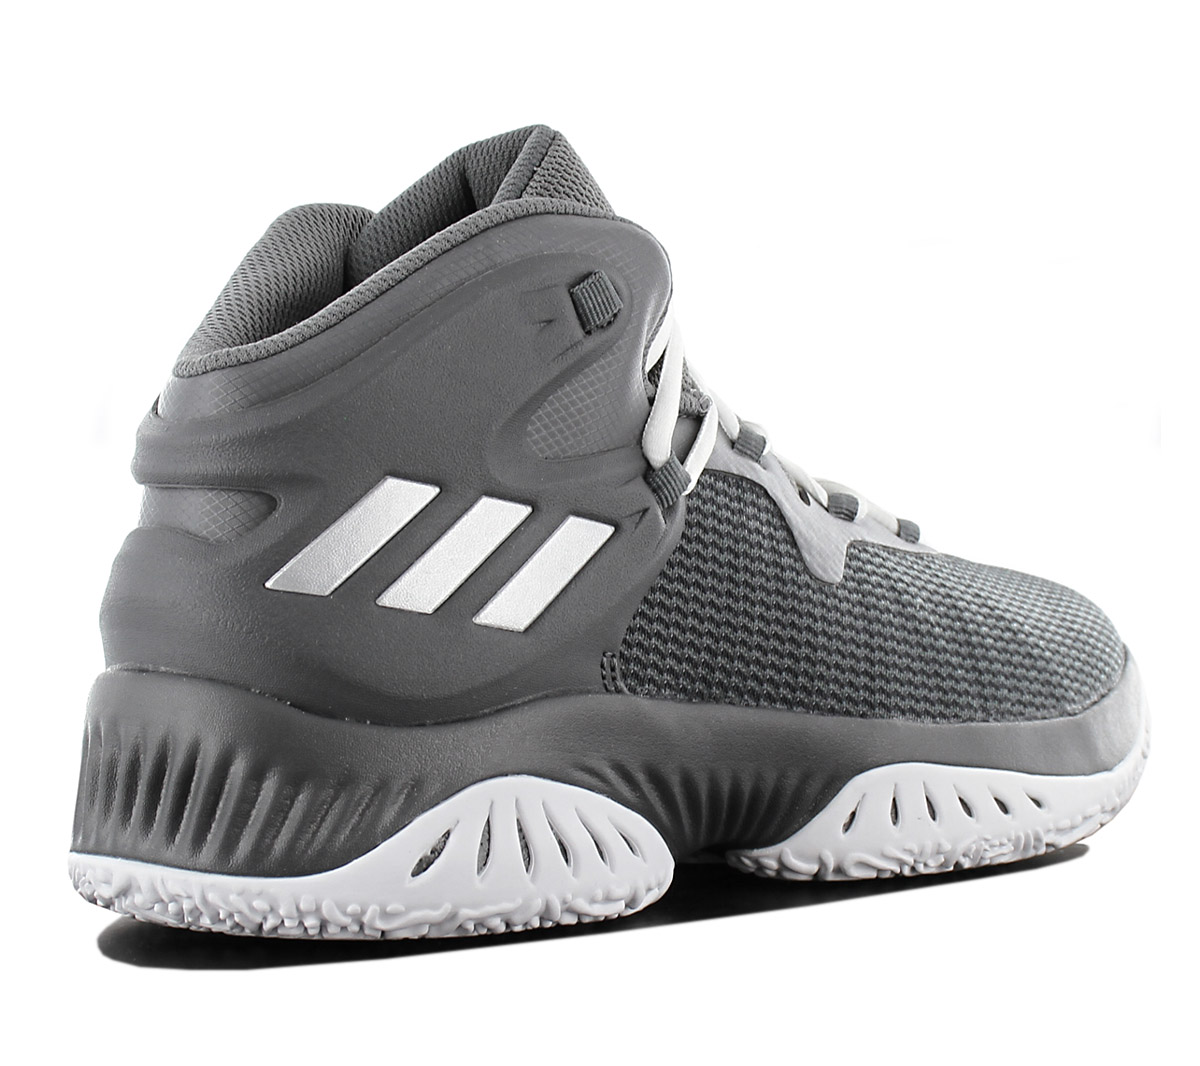 Adidas Explosive Bounce Men s Basketballshoe Basketball Shoes Grey ... cc332a335